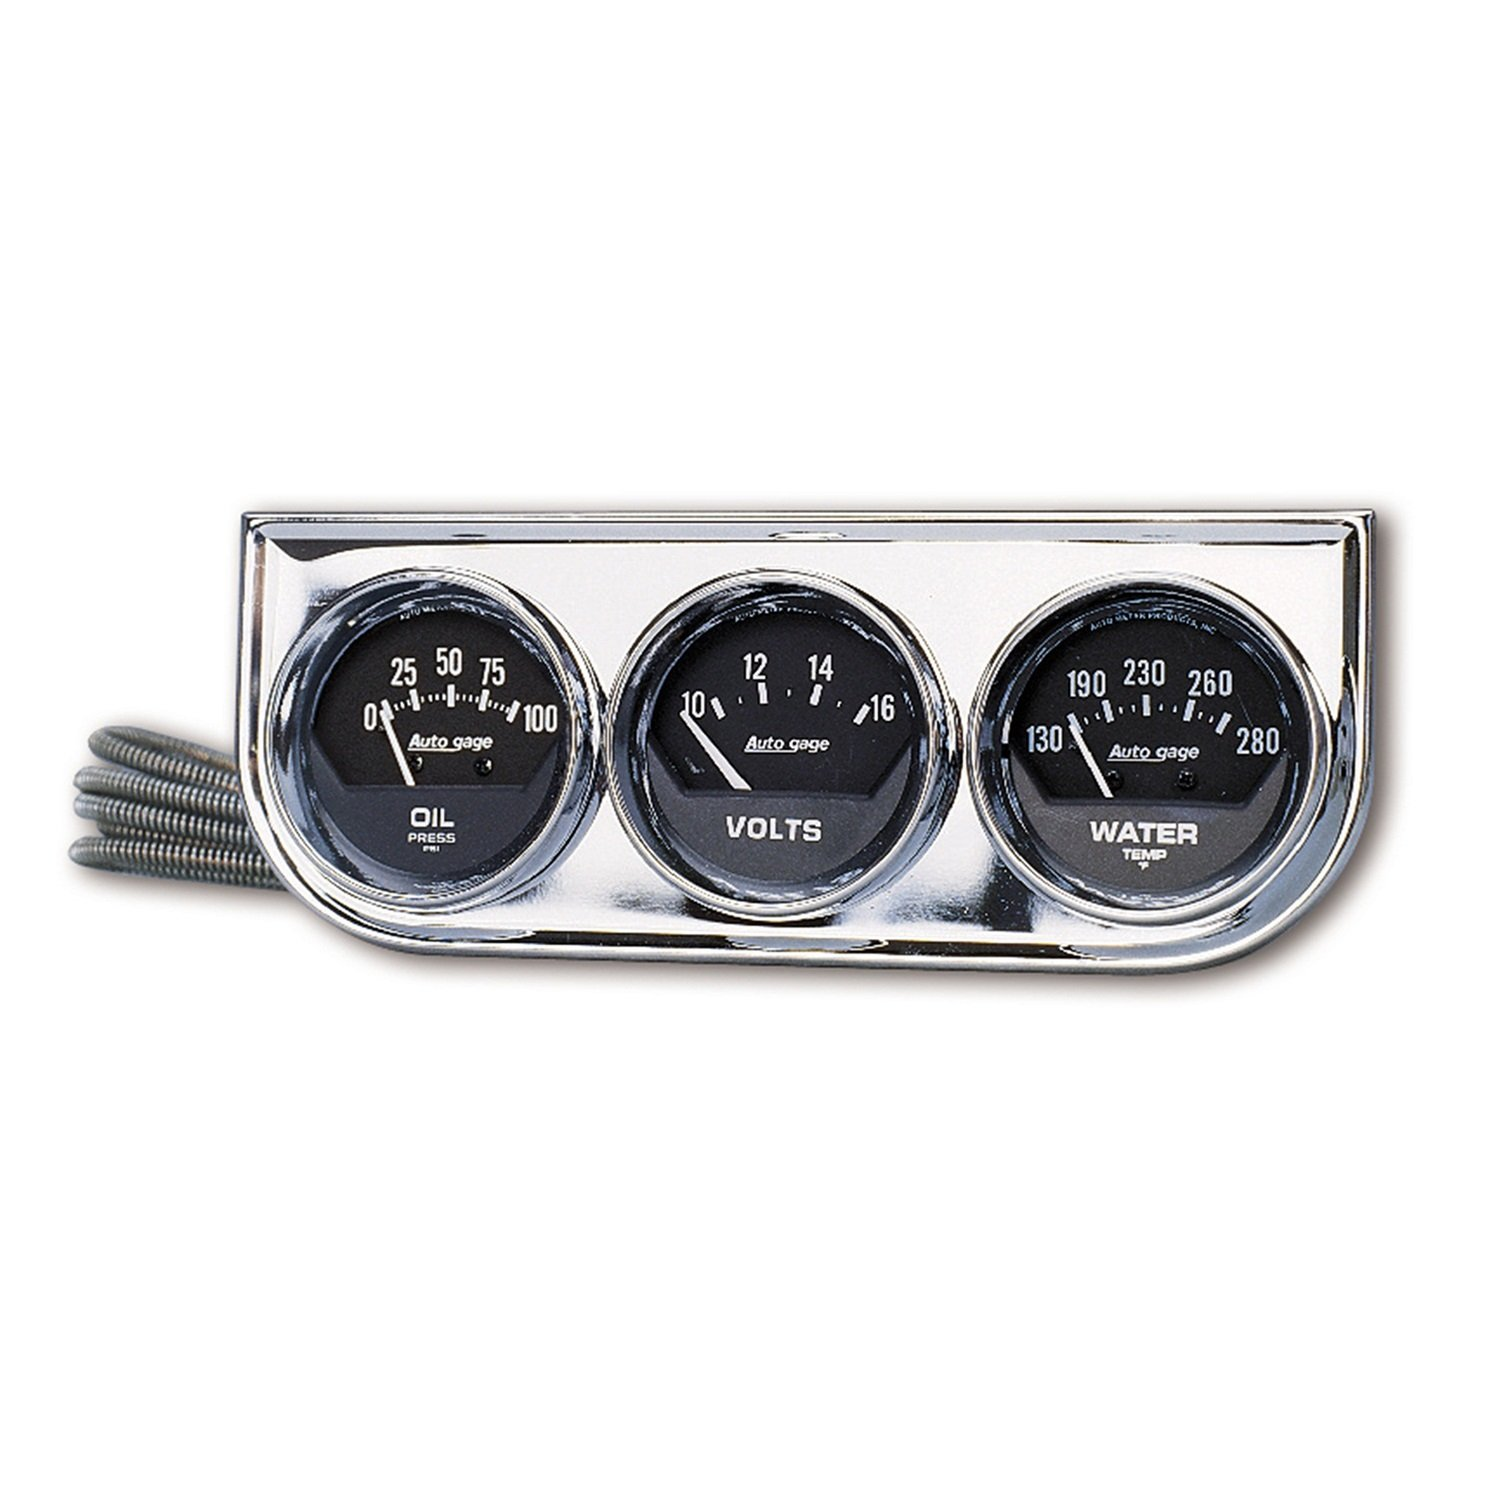 Auto Meter 2349 Autogage Black Oil/Water/Volt Gauge with Chrome Console by Auto Meter